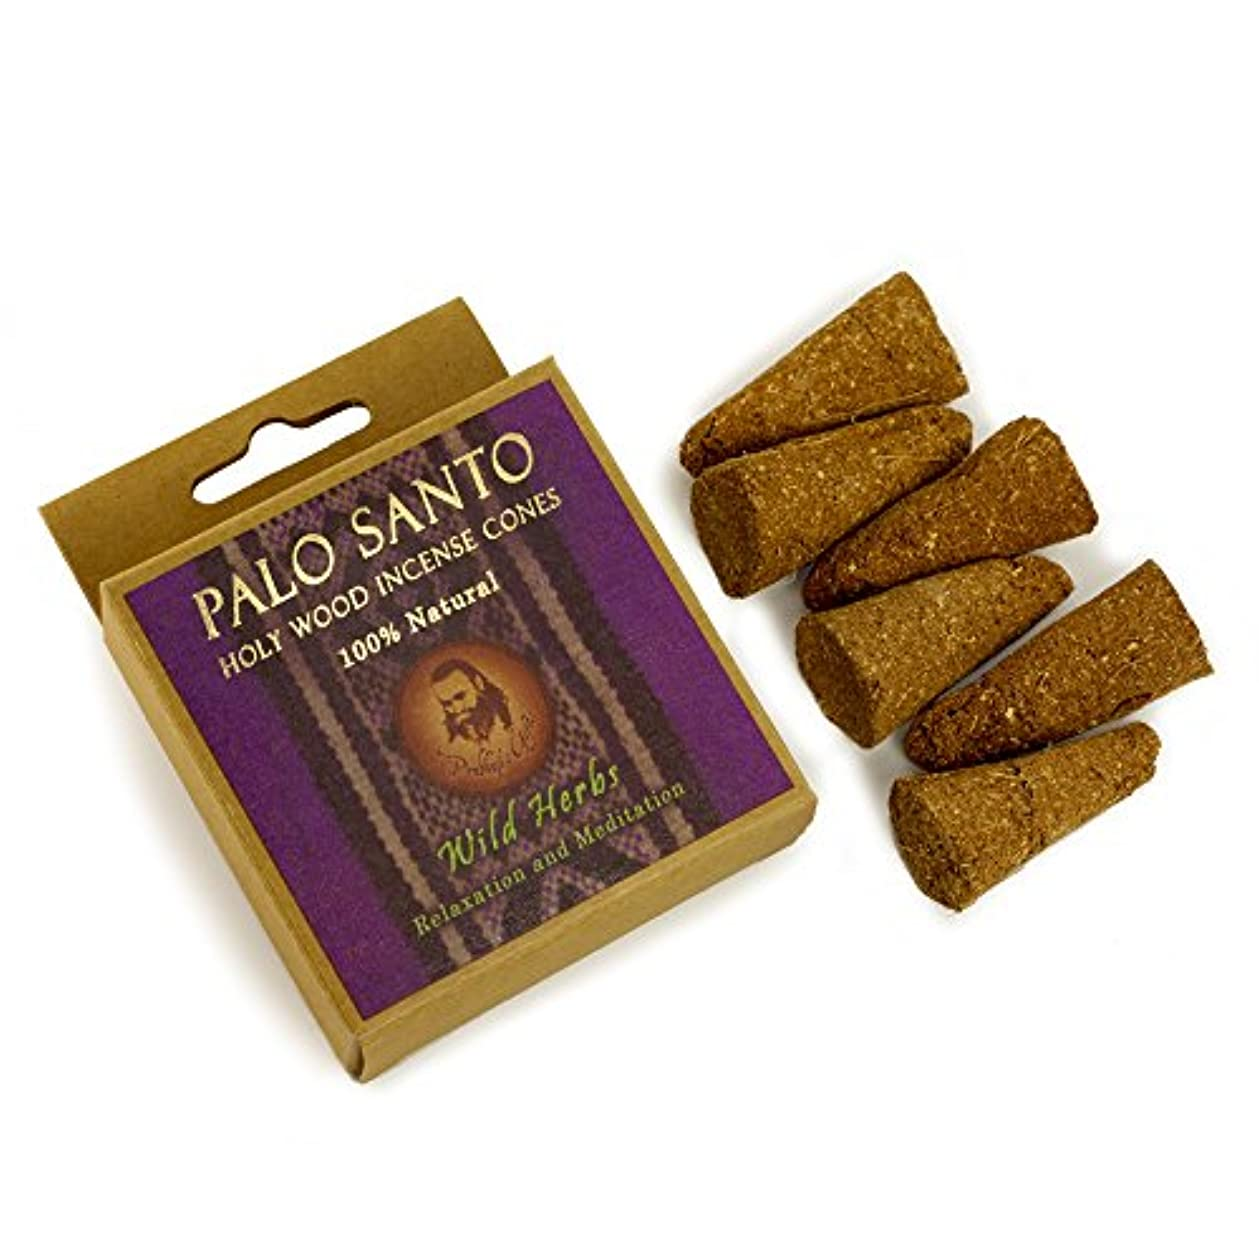 みなさん娯楽聖なるPalo Santo and Wild herbs – Relaxation &瞑想 – 6 Incense Cones